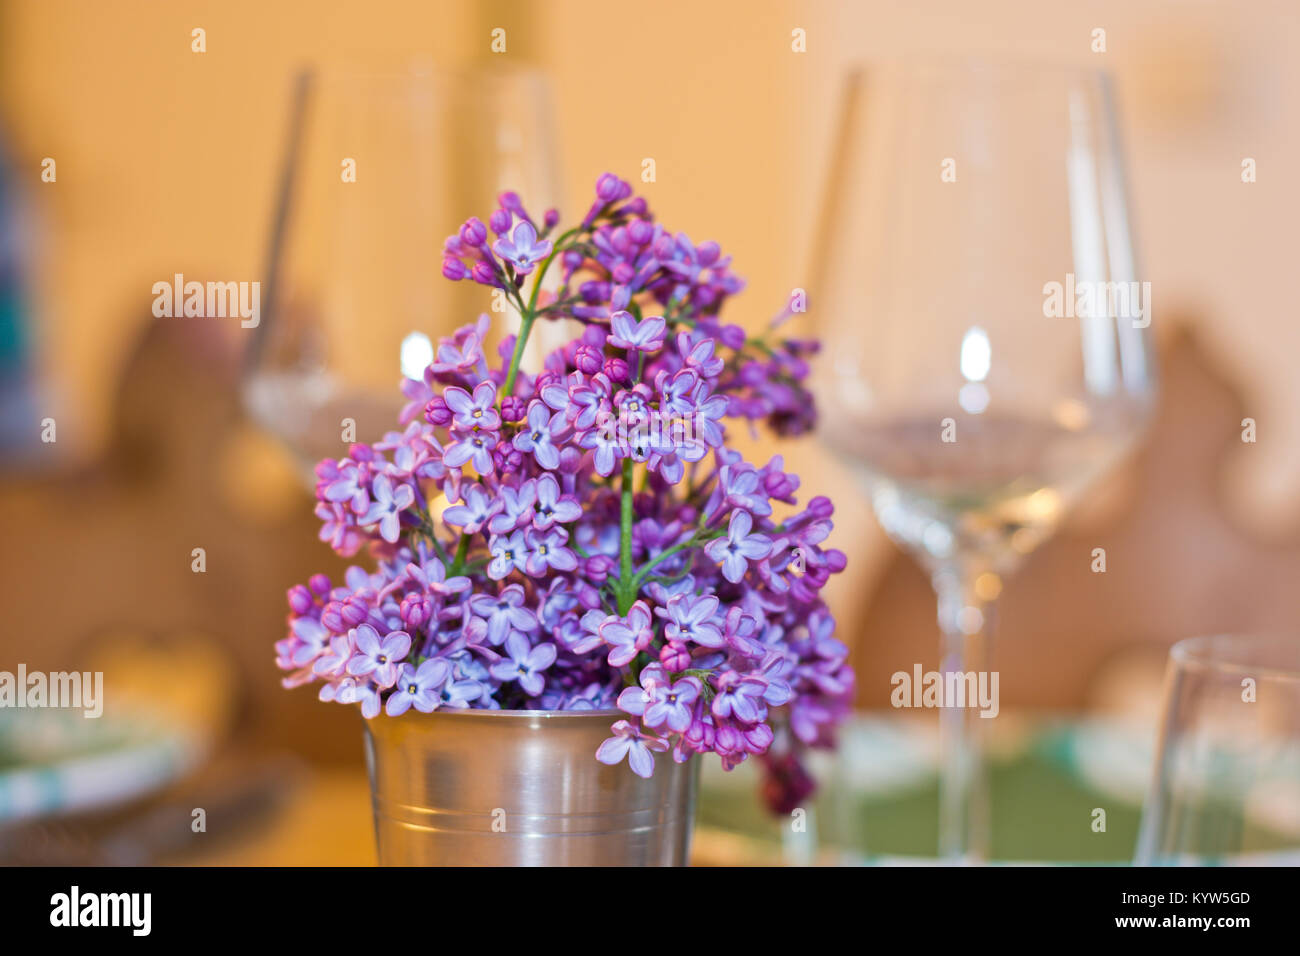 Lilac flowers as spring bouquet in a metal cup on a table setting with wine glasses in the background. Warm shades - Stock Image